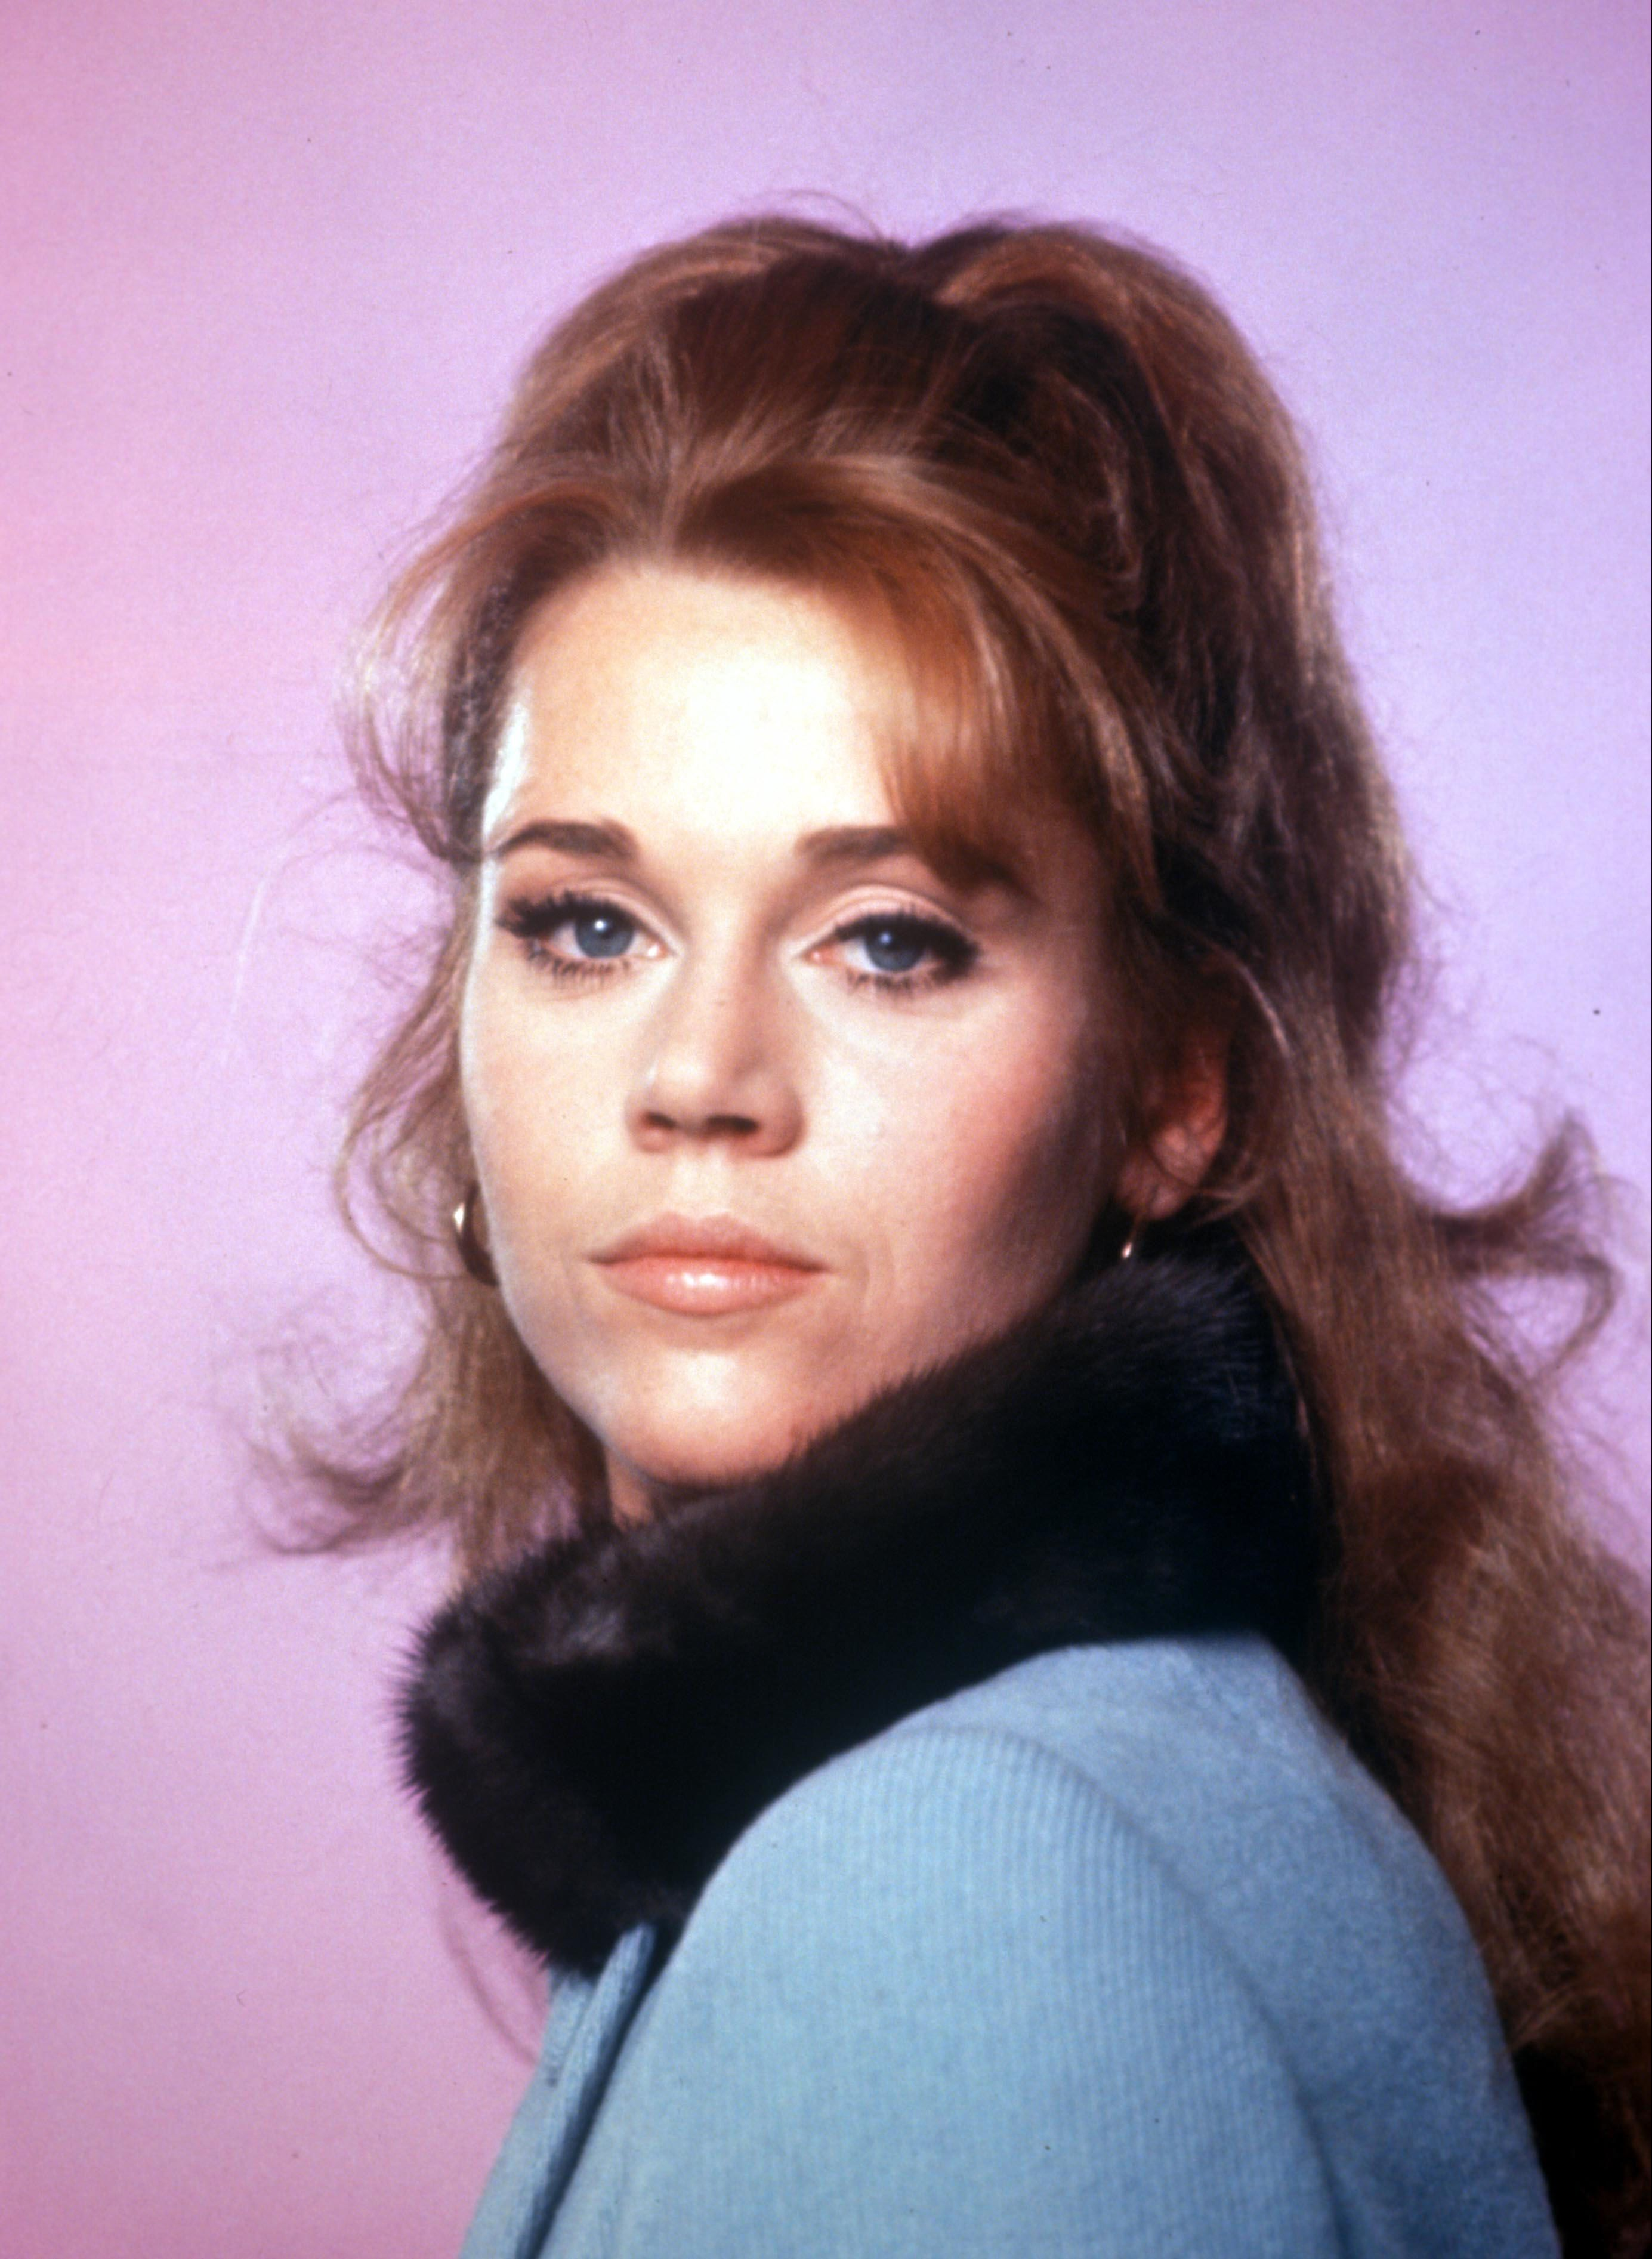 Jane Fonda during a photoshoot, August 25, 1967. | Source: Getty Images